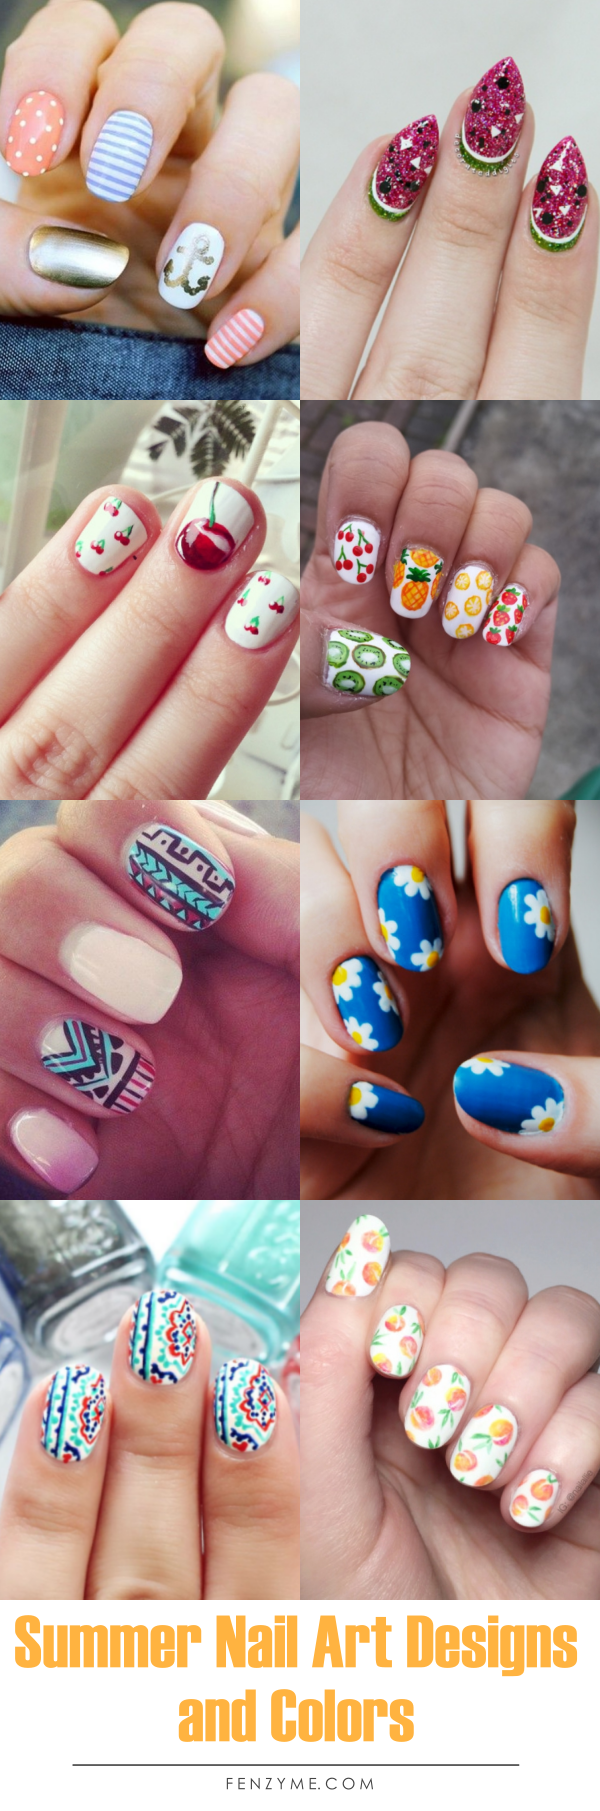 Summer Nail Art Designs and Colors00001